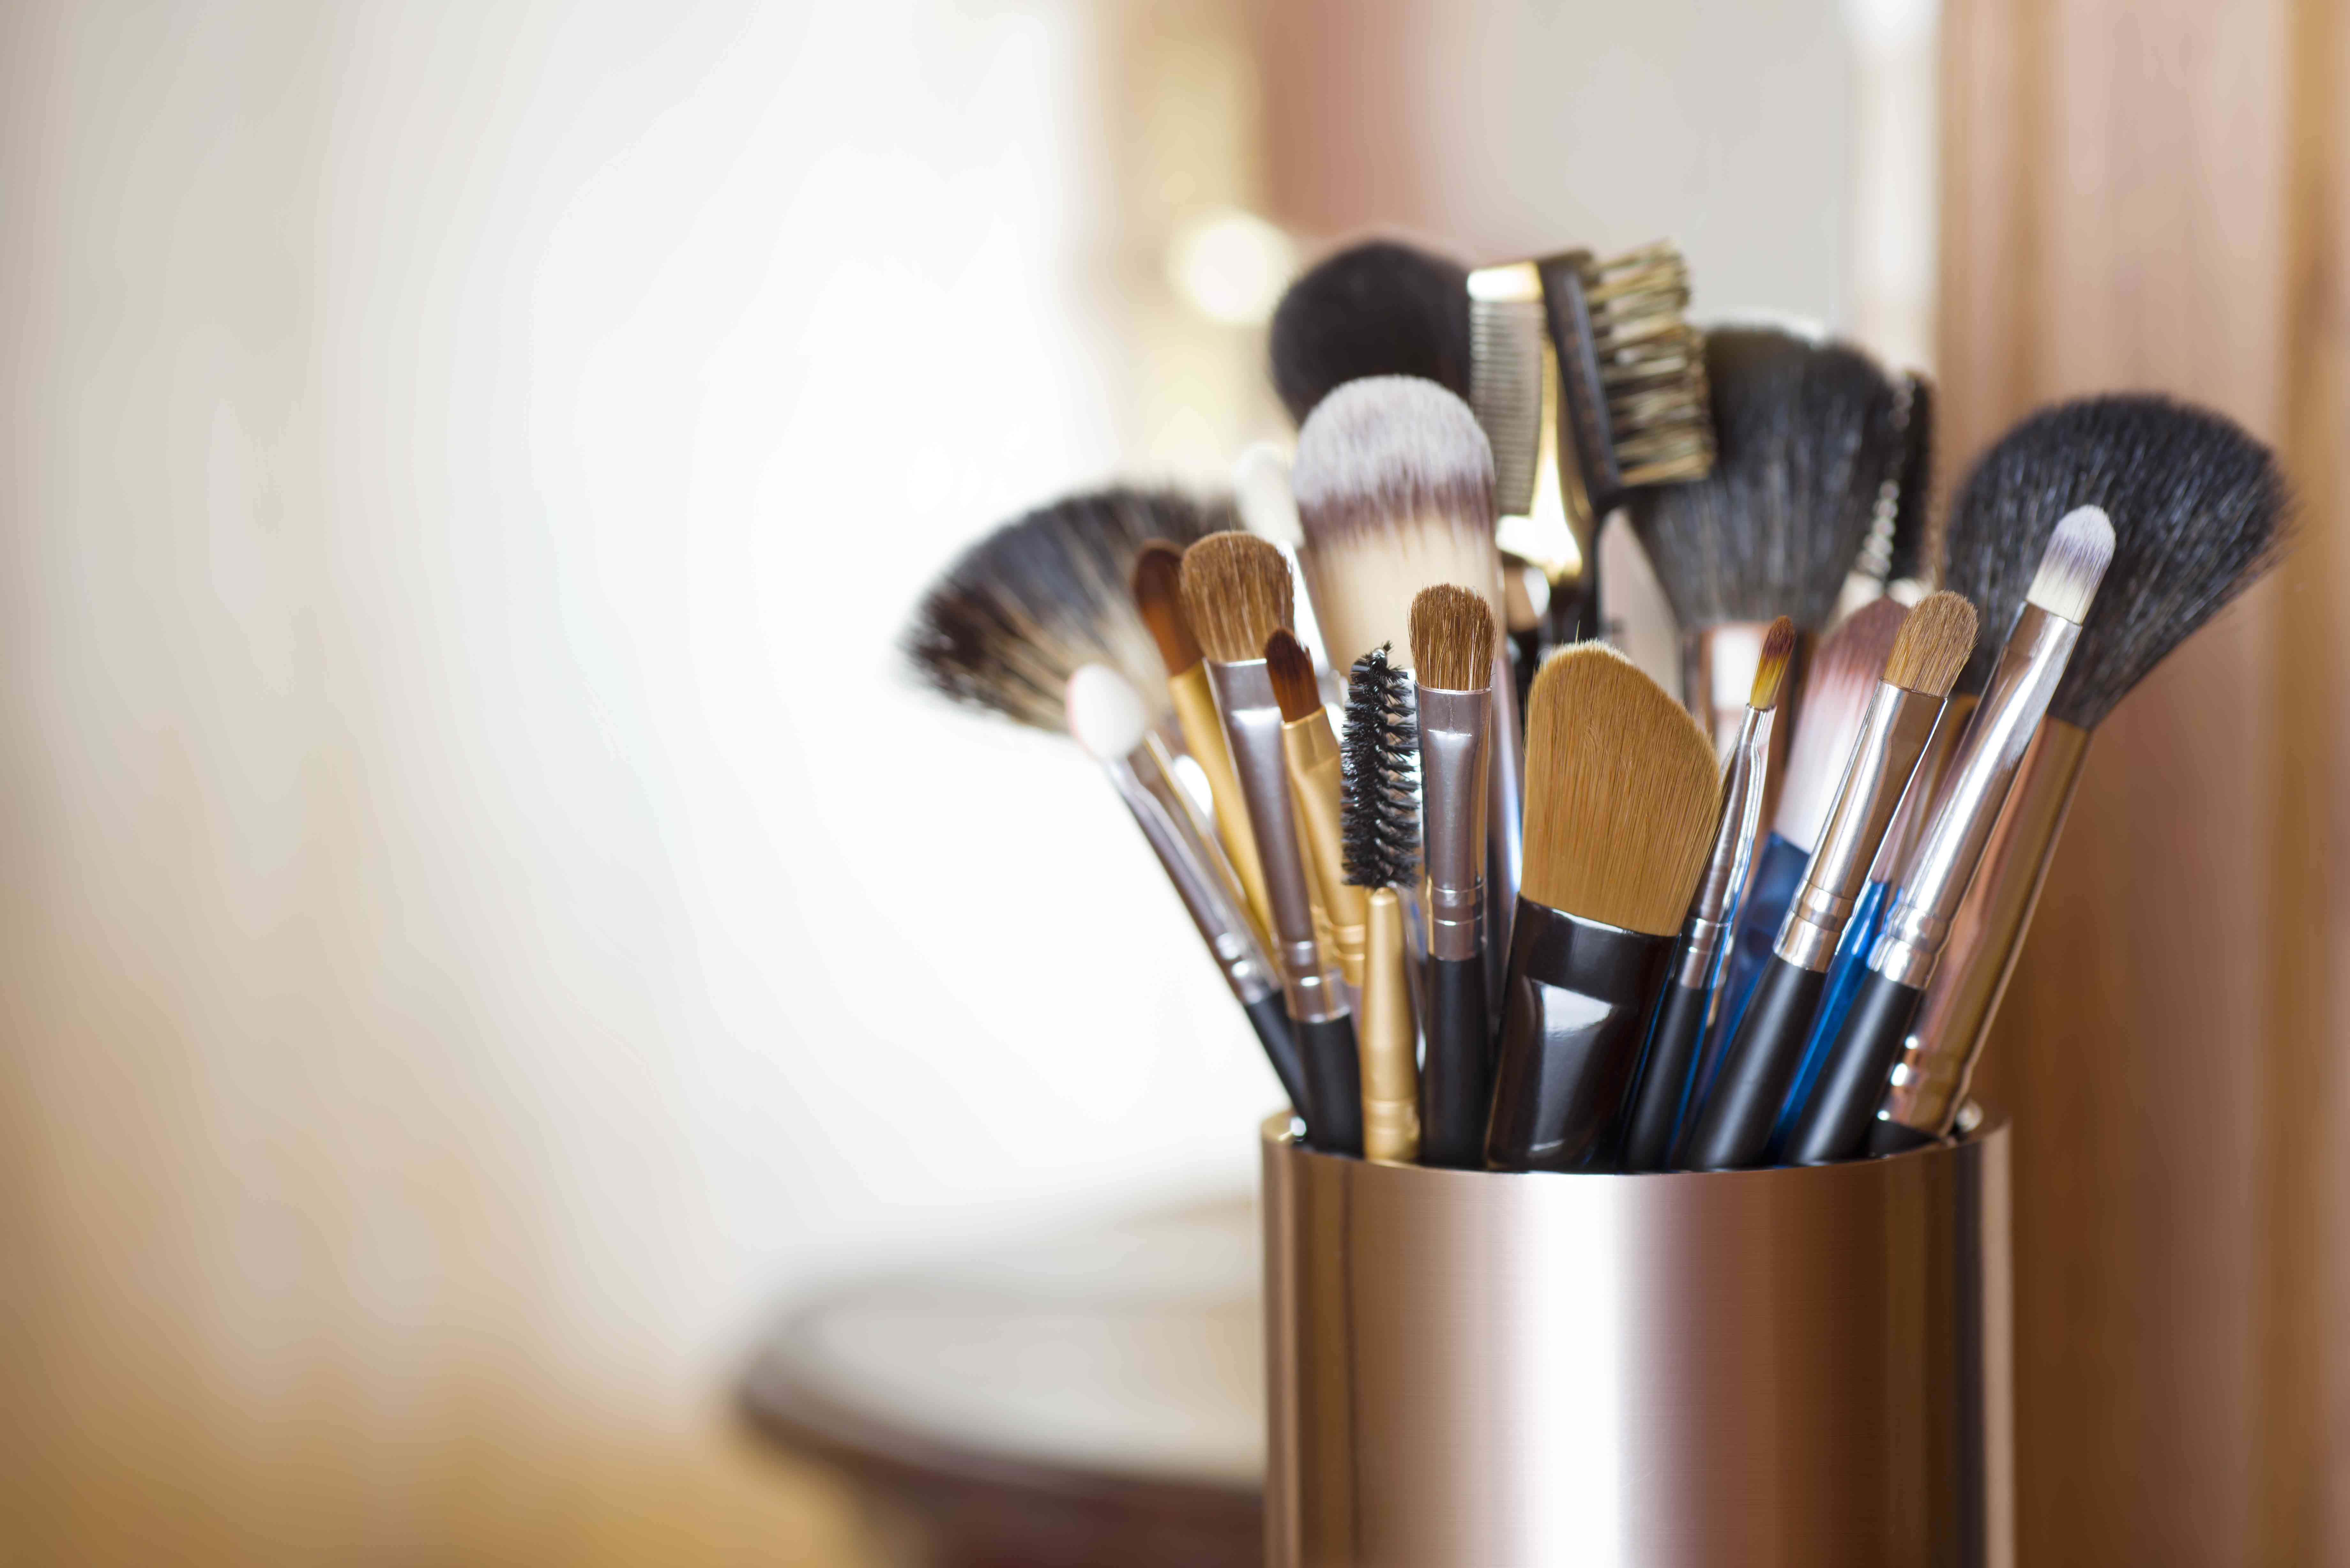 Makeup brushes in metal stand over blurred abstract room background